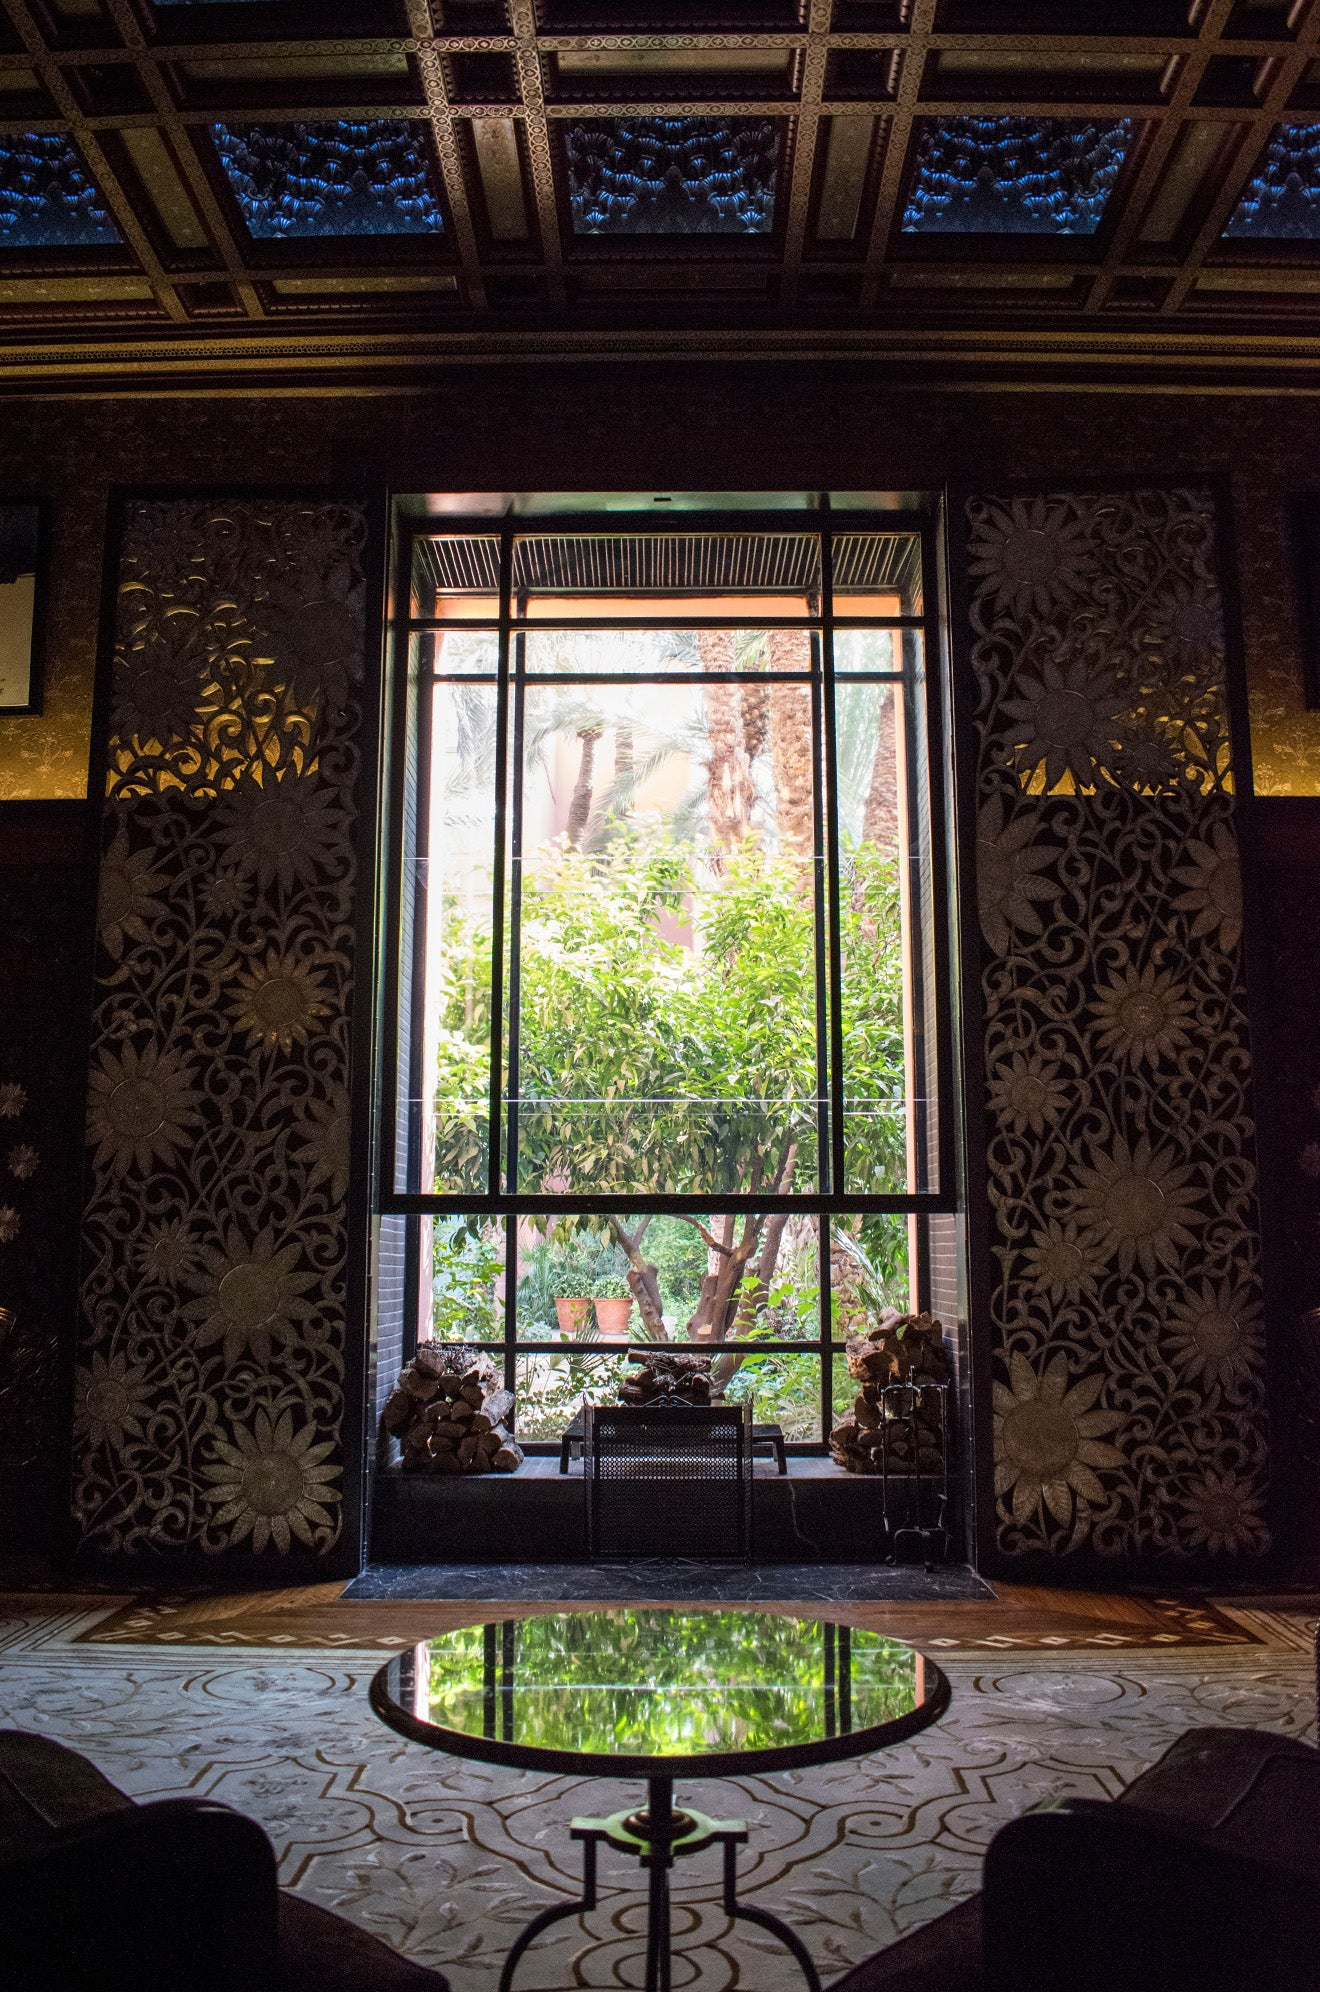 Moroccan interior decoration with a view across the garden